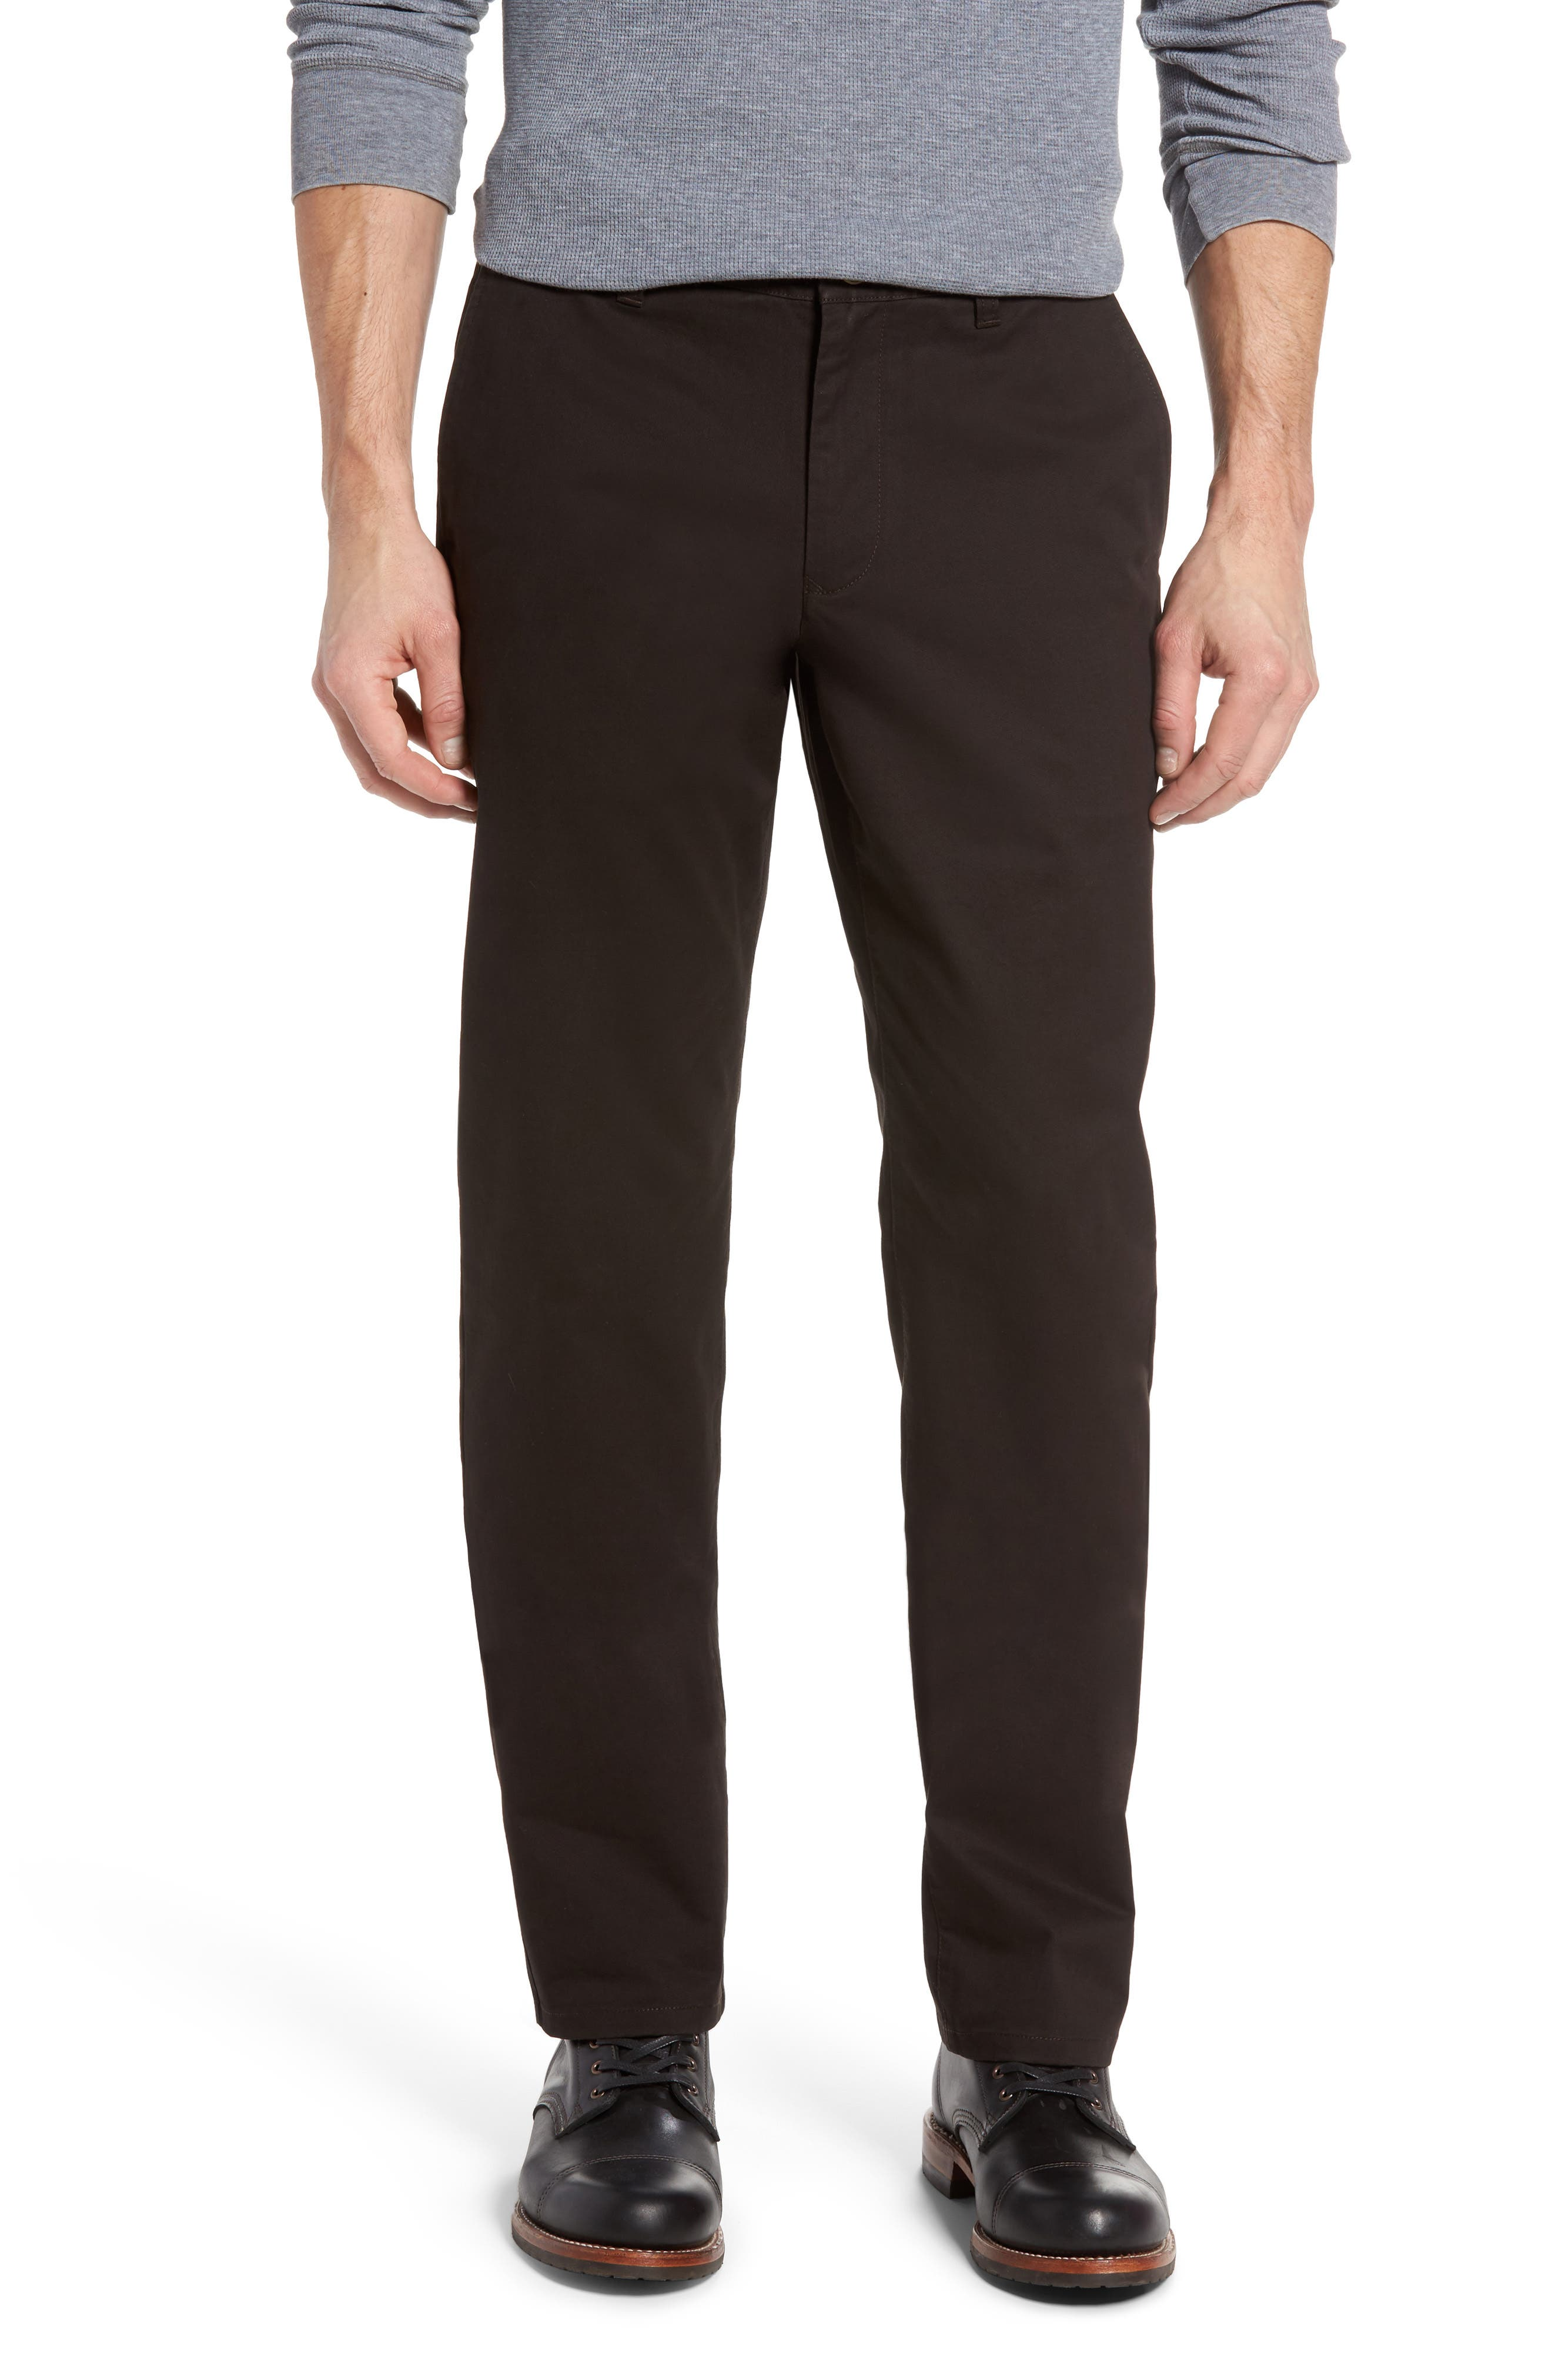 Straight Leg Stretch Washed Chinos,                             Main thumbnail 1, color,                             Chocolate Ale